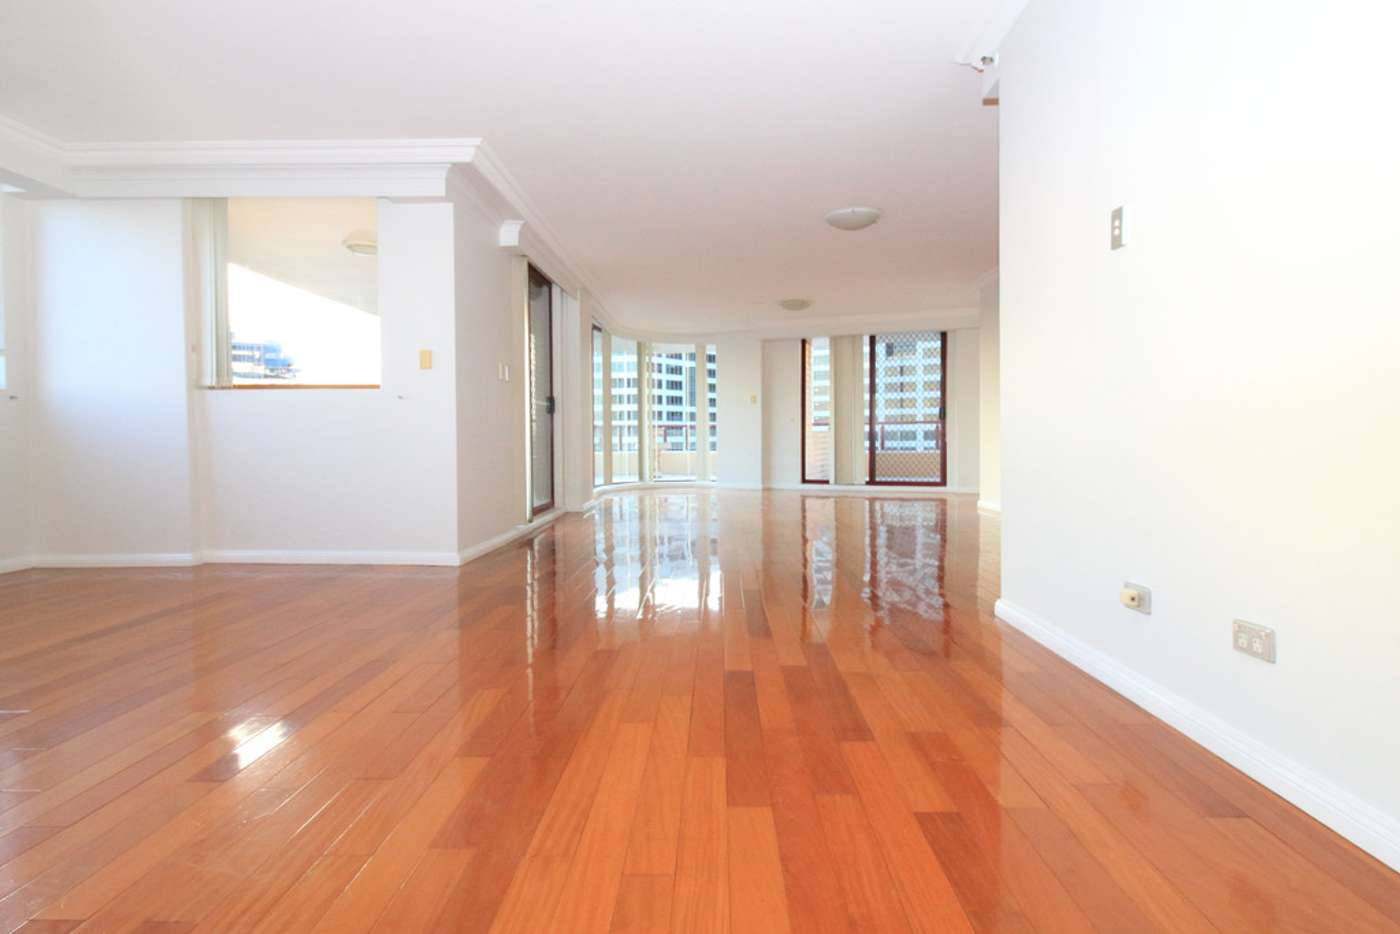 Sixth view of Homely apartment listing, 322/158-166 Day Street (289-295 Sussex Street), Sydney NSW 2000